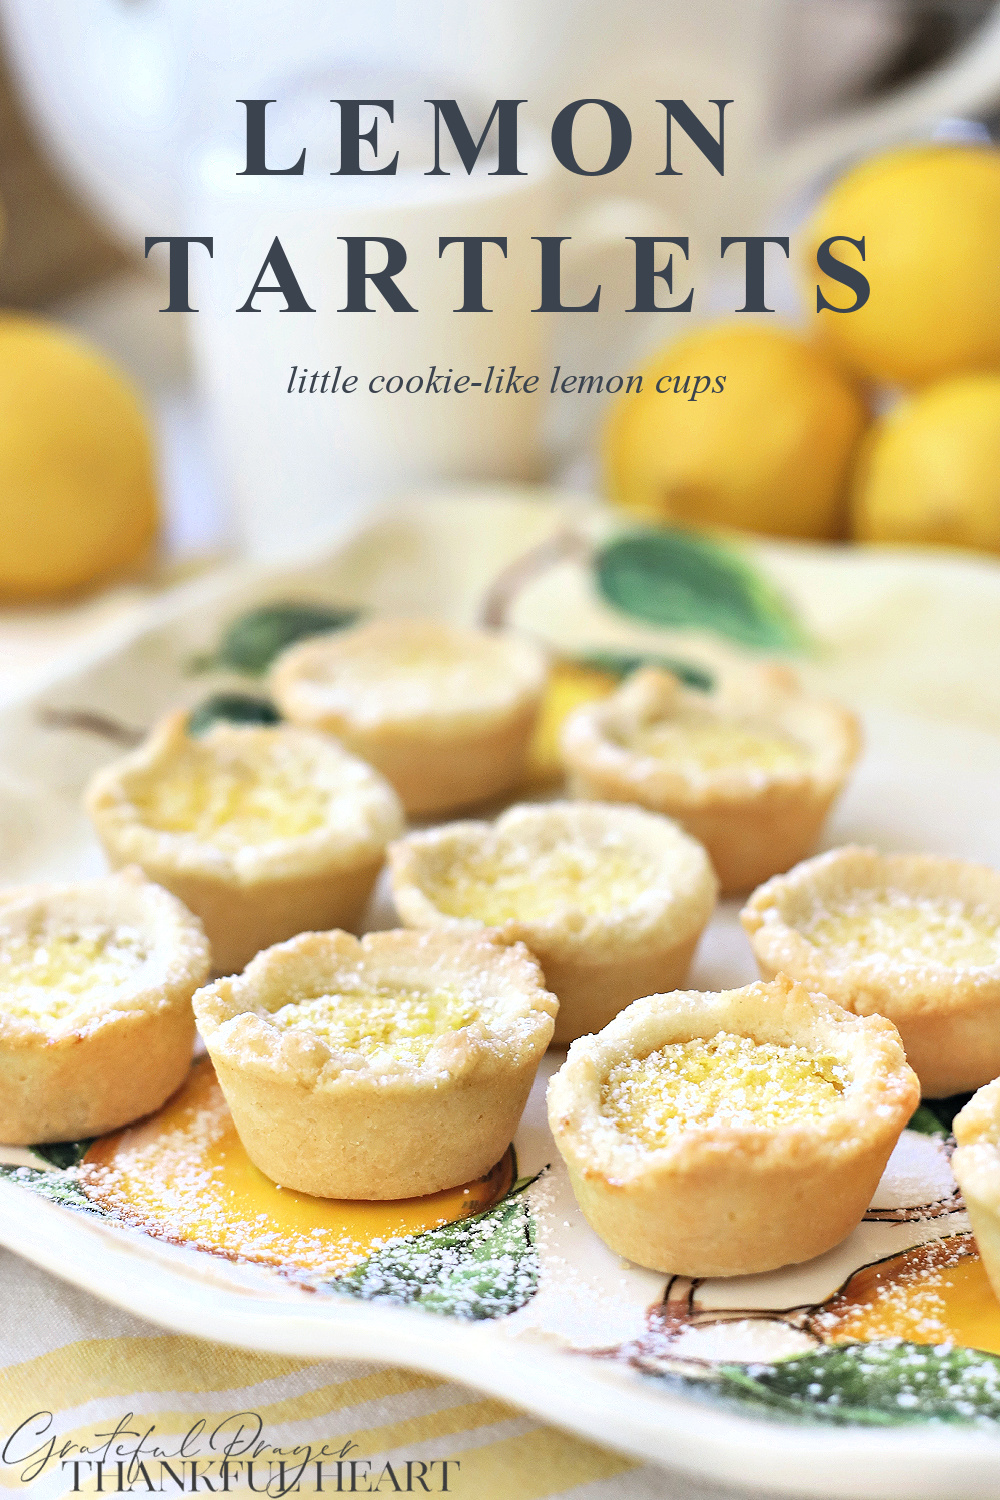 Easy recipe for Lemon Tartlets. Delicious little cookies filled with a sweet lemony center are perfect for Christmas or with tea as a dessert.